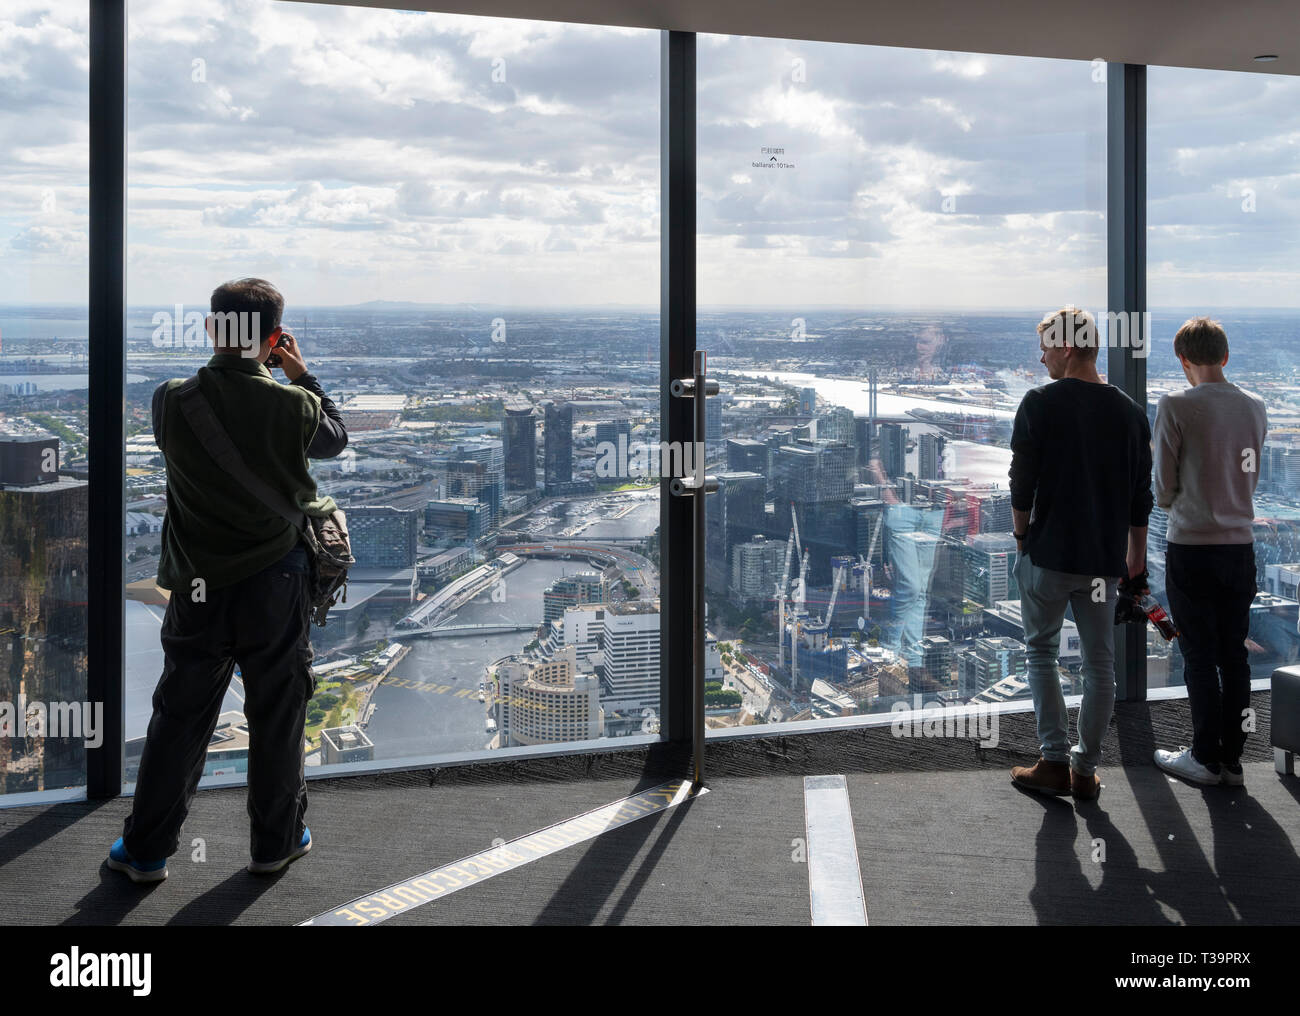 Aerial view over the city from the Eureka Skydeck 88, Eureka Tower, Melbourne, Victoria, Australia - Stock Image